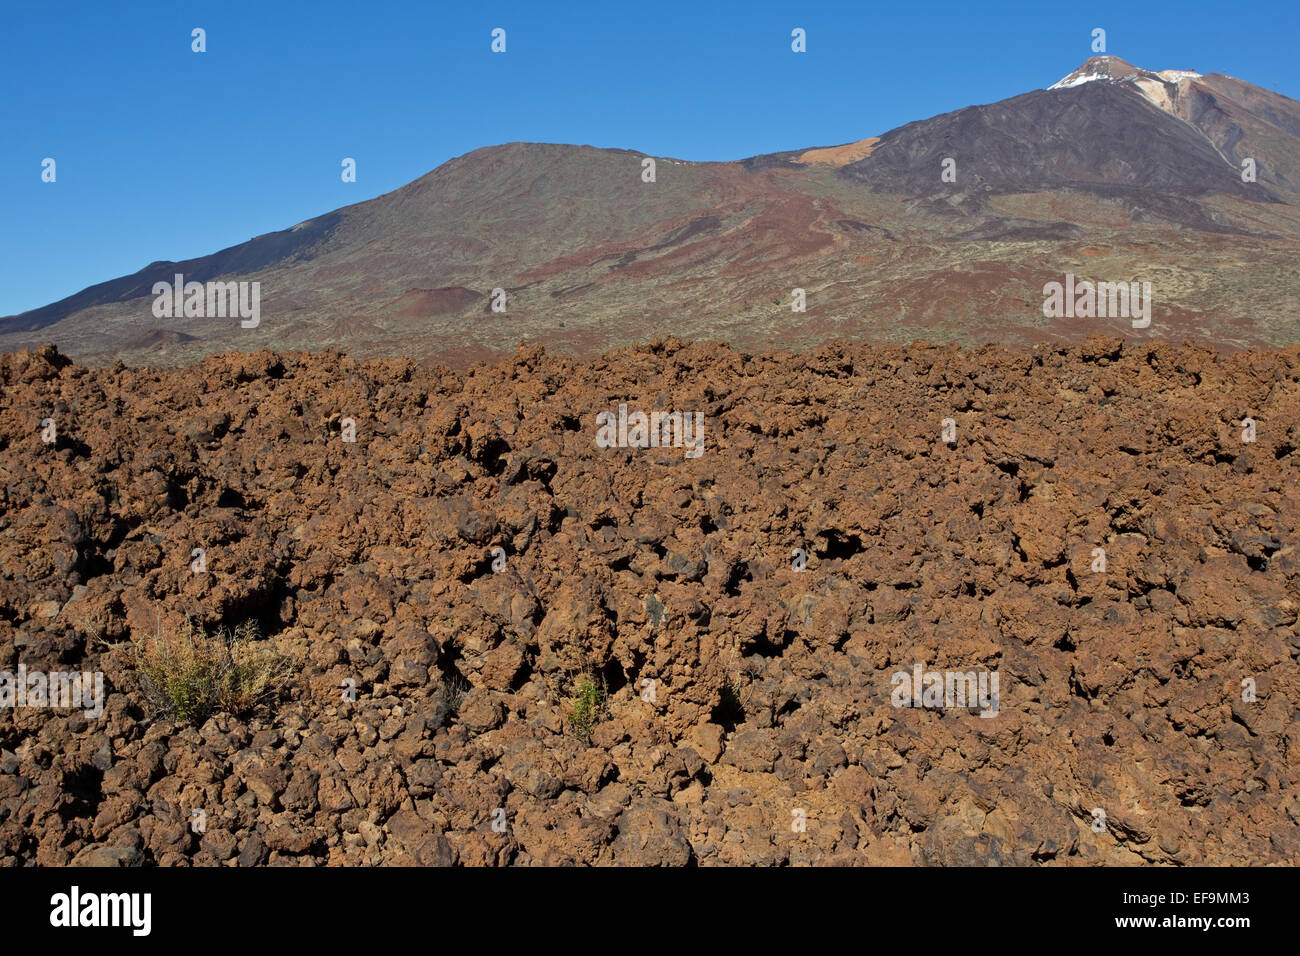 Lava field, Teide and Pico Viejo, Las Cañadas del Teide, Teide National Park, Stock Photo